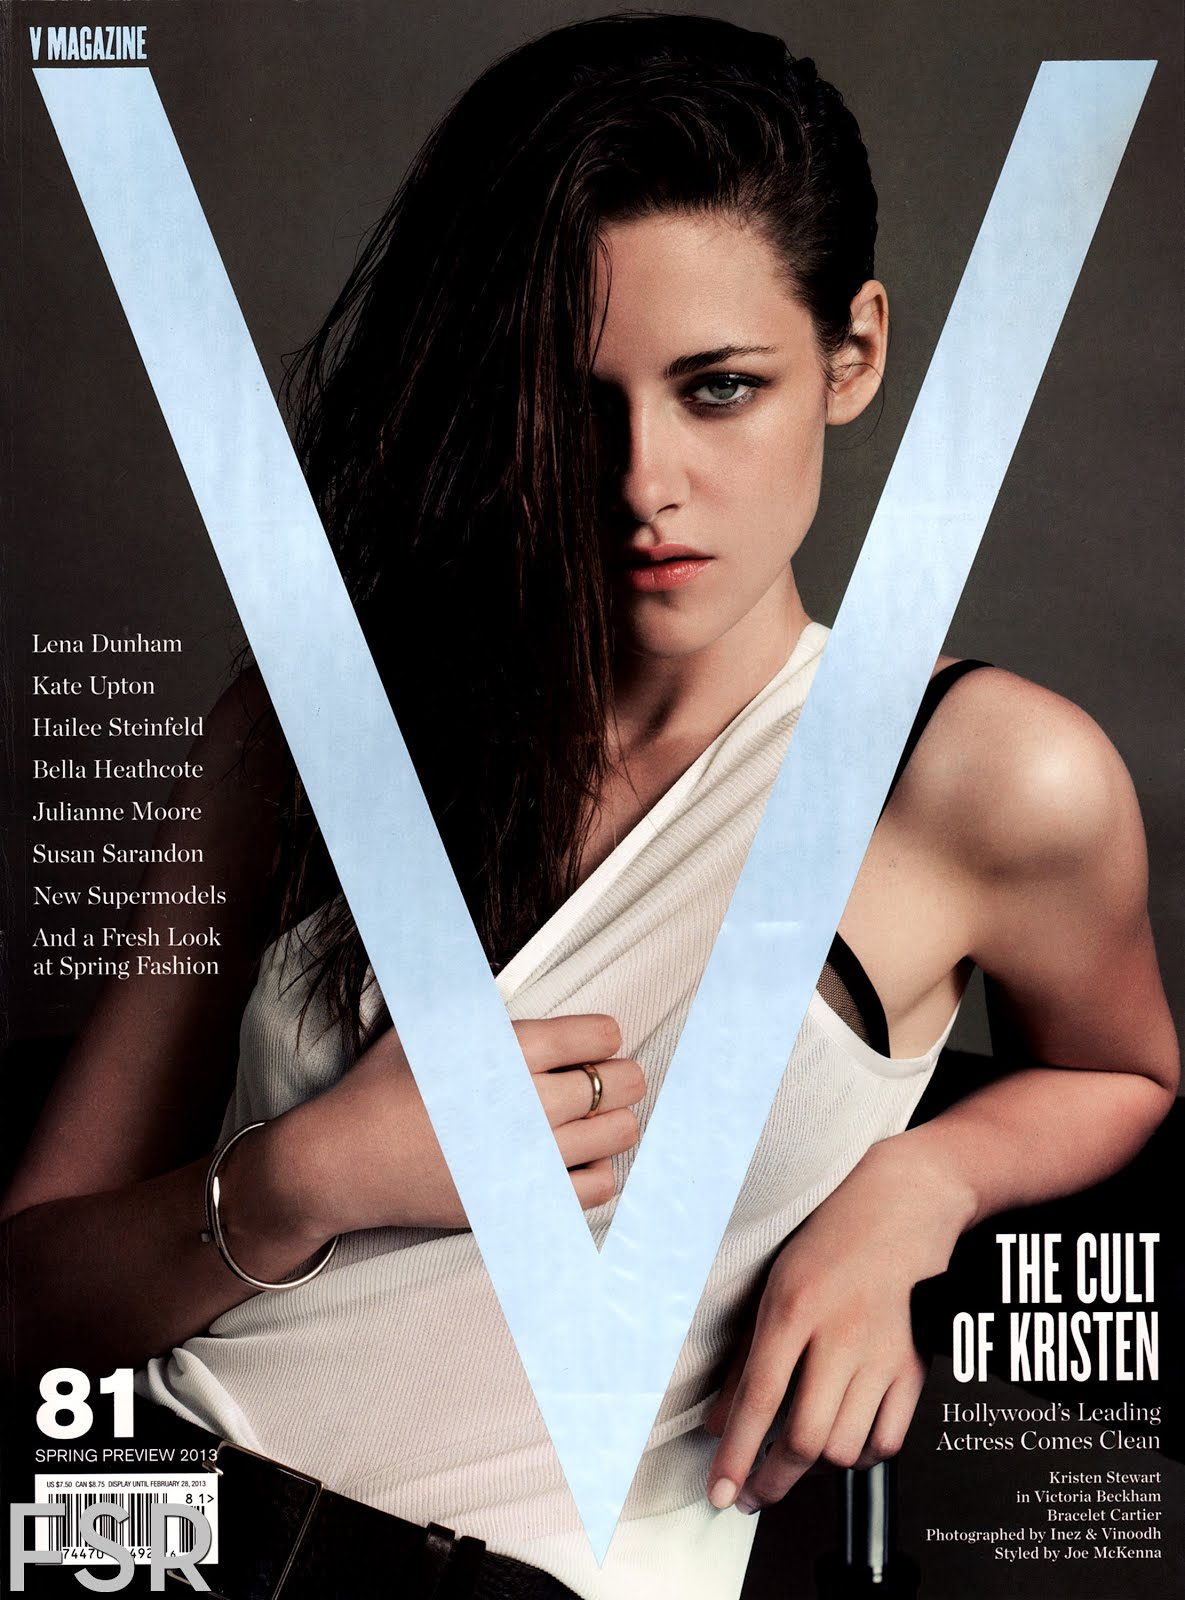 http://2.bp.blogspot.com/-QhZTPP3WWVg/UOih8kAhH1I/AAAAAAAAPXE/Dm754ypRxiw/s1600/fashion_scans_remastered-kristen_stewart-v-issue_81-scanned_by_vampirehorde-hq-1.jpg